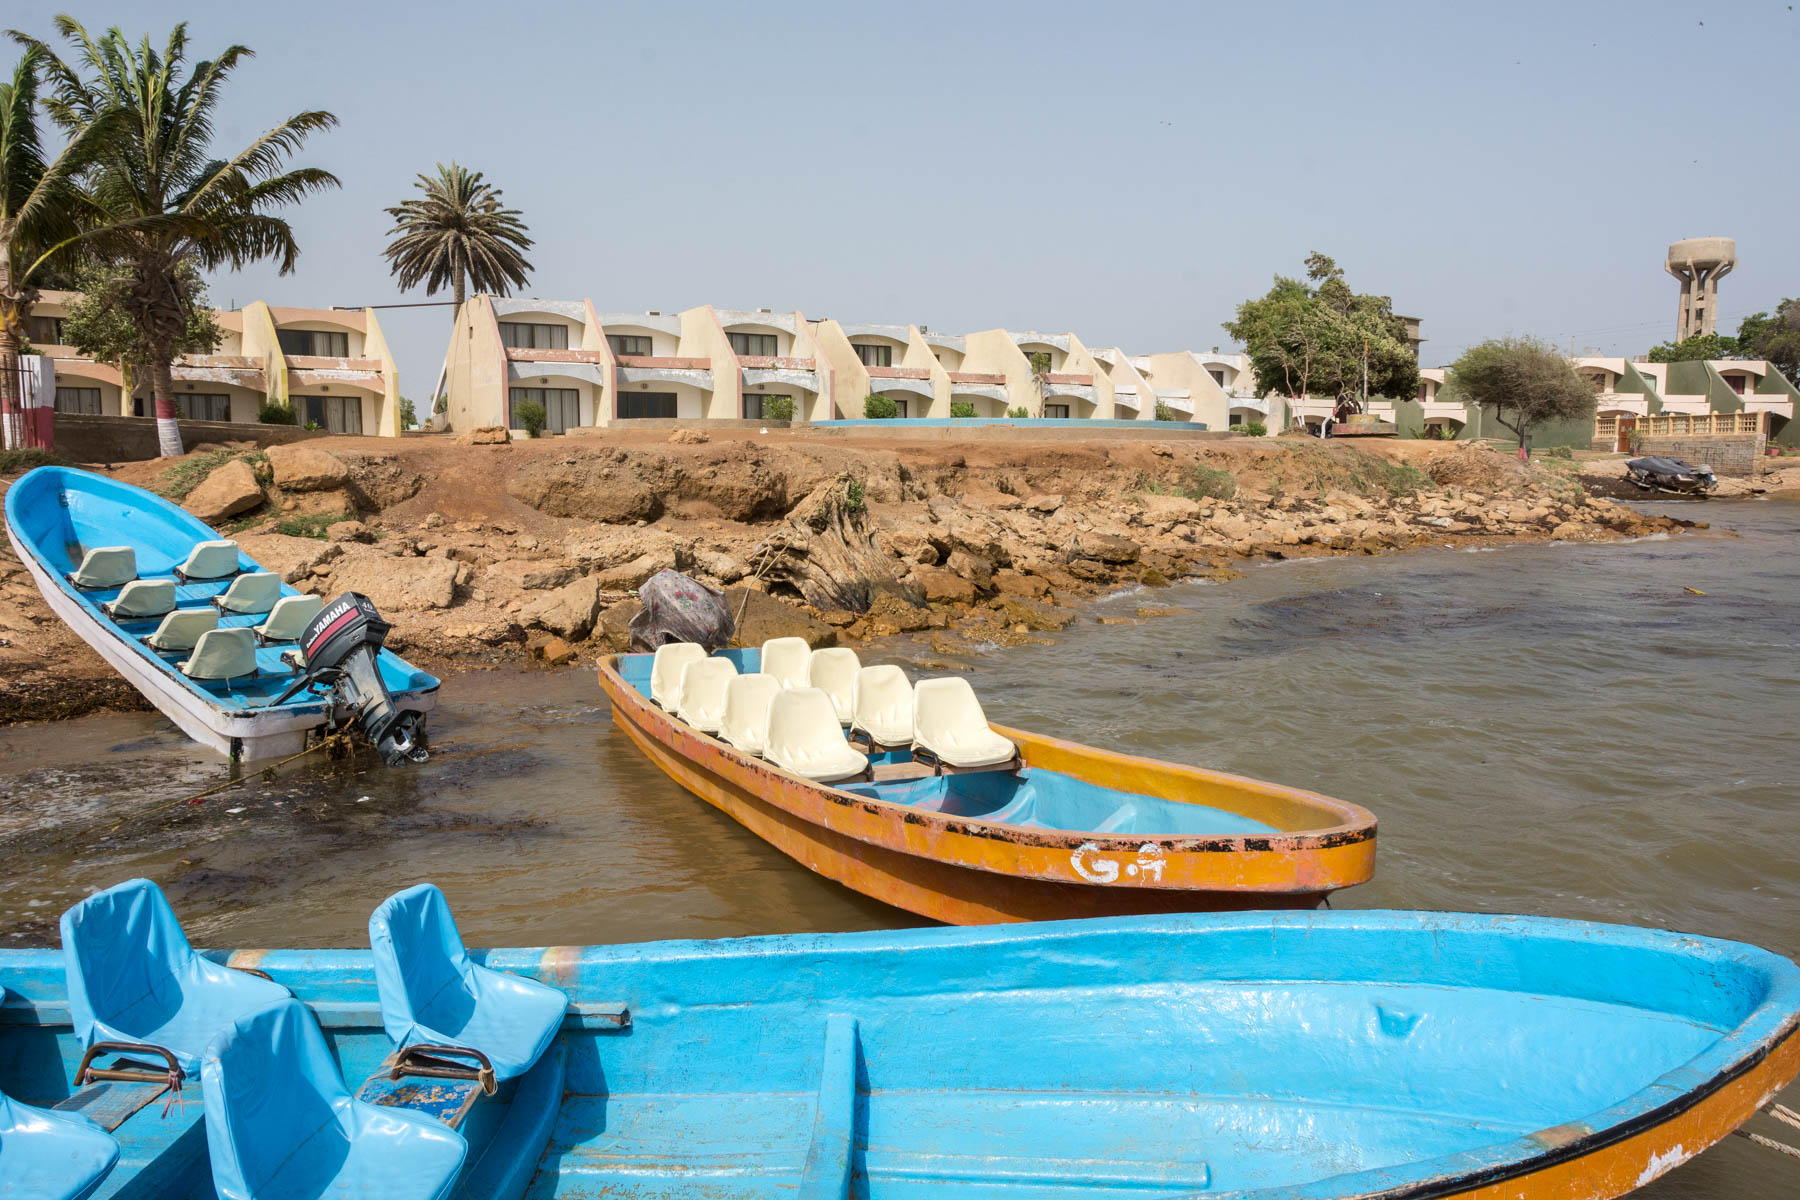 Sindh travel guide - Keenjhar lake boats - Lost With Purpose travel blog